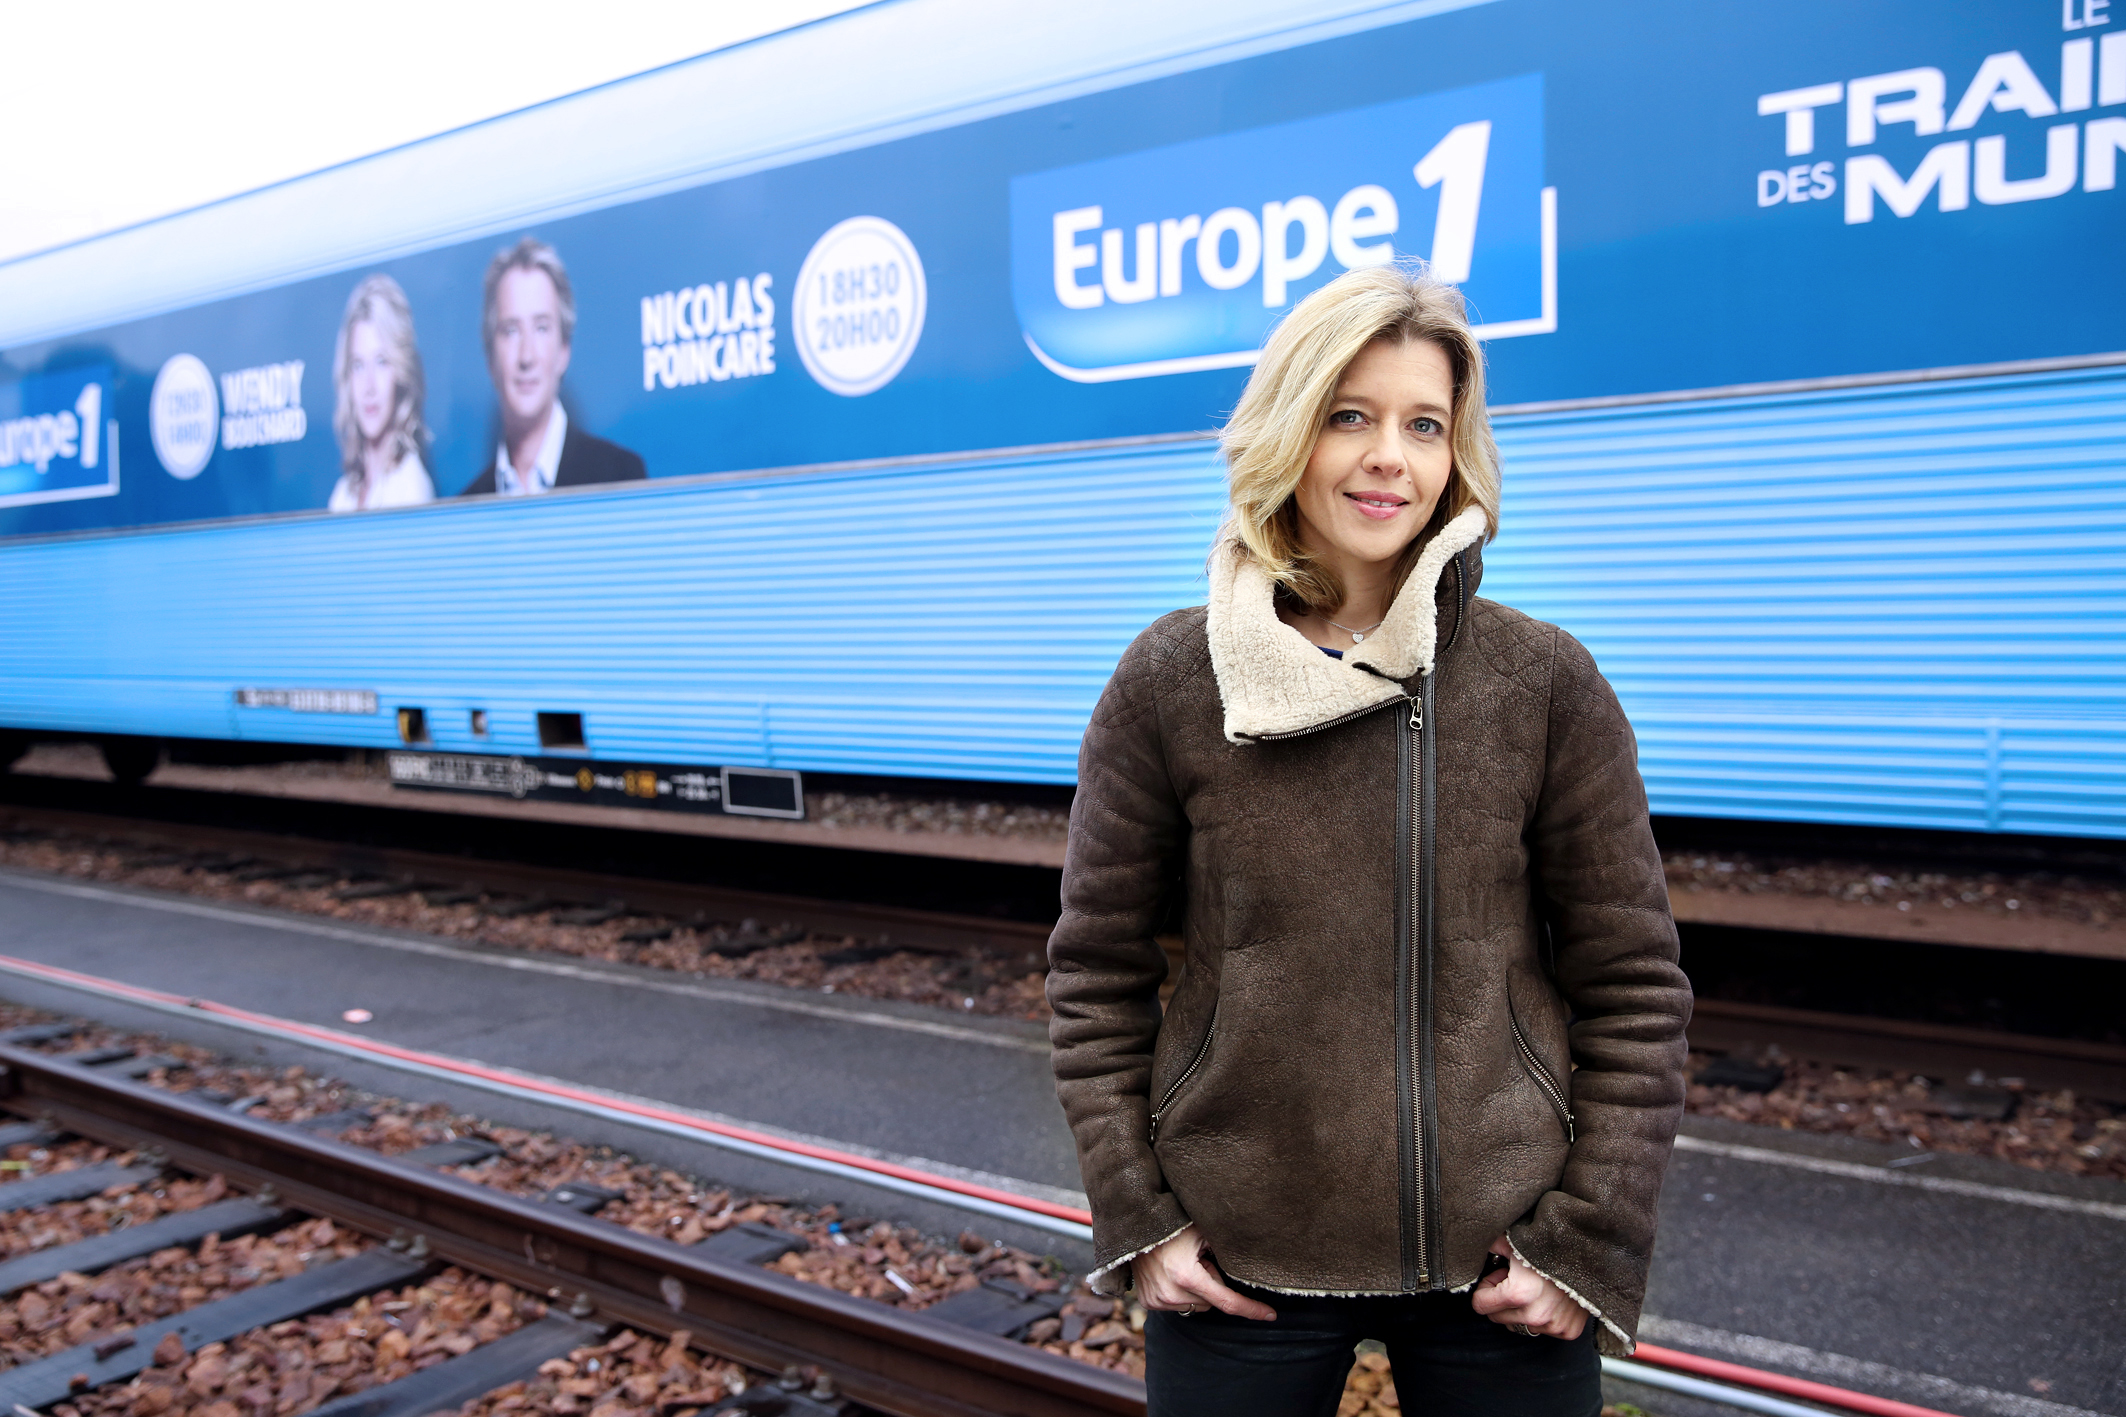 Wendy Bouchard animera sa quotidienne depuis le Train Europe 1 des Municipales